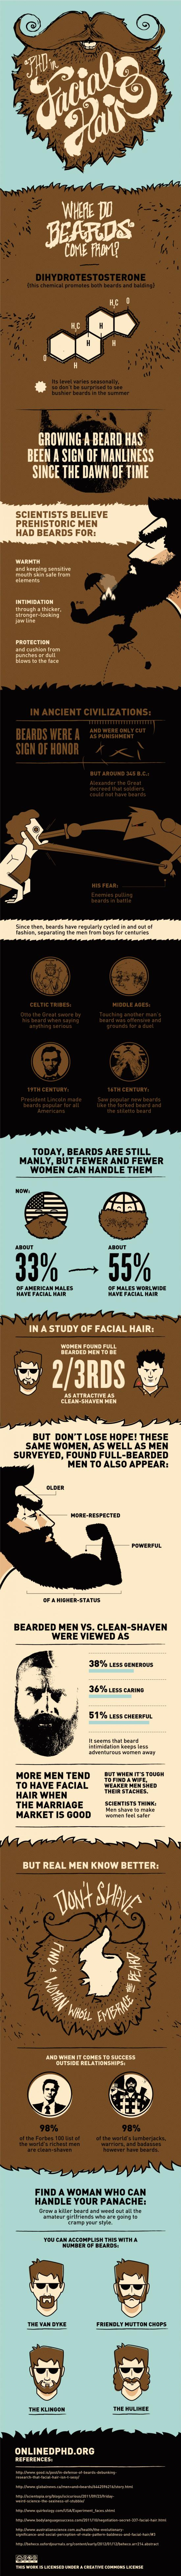 Infographic: Grooming Your Moustache